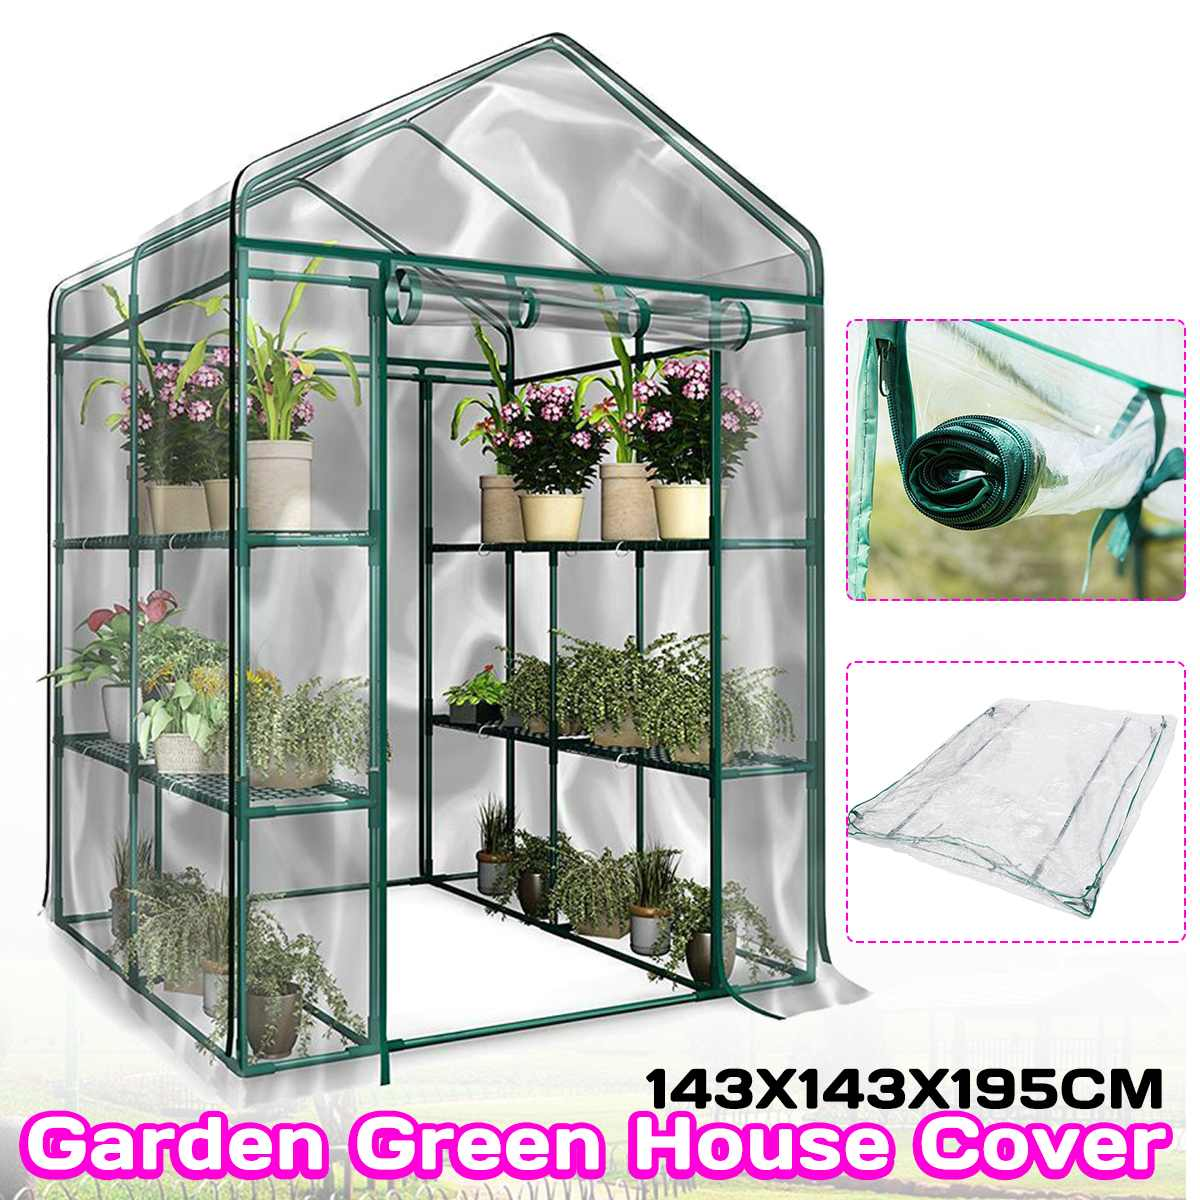 3-Tier Portable Greenhouse 6 Shelves PVC Cover Garden Cover Plants Flower House 143X143X195cm Corrosion-resistant Waterproof